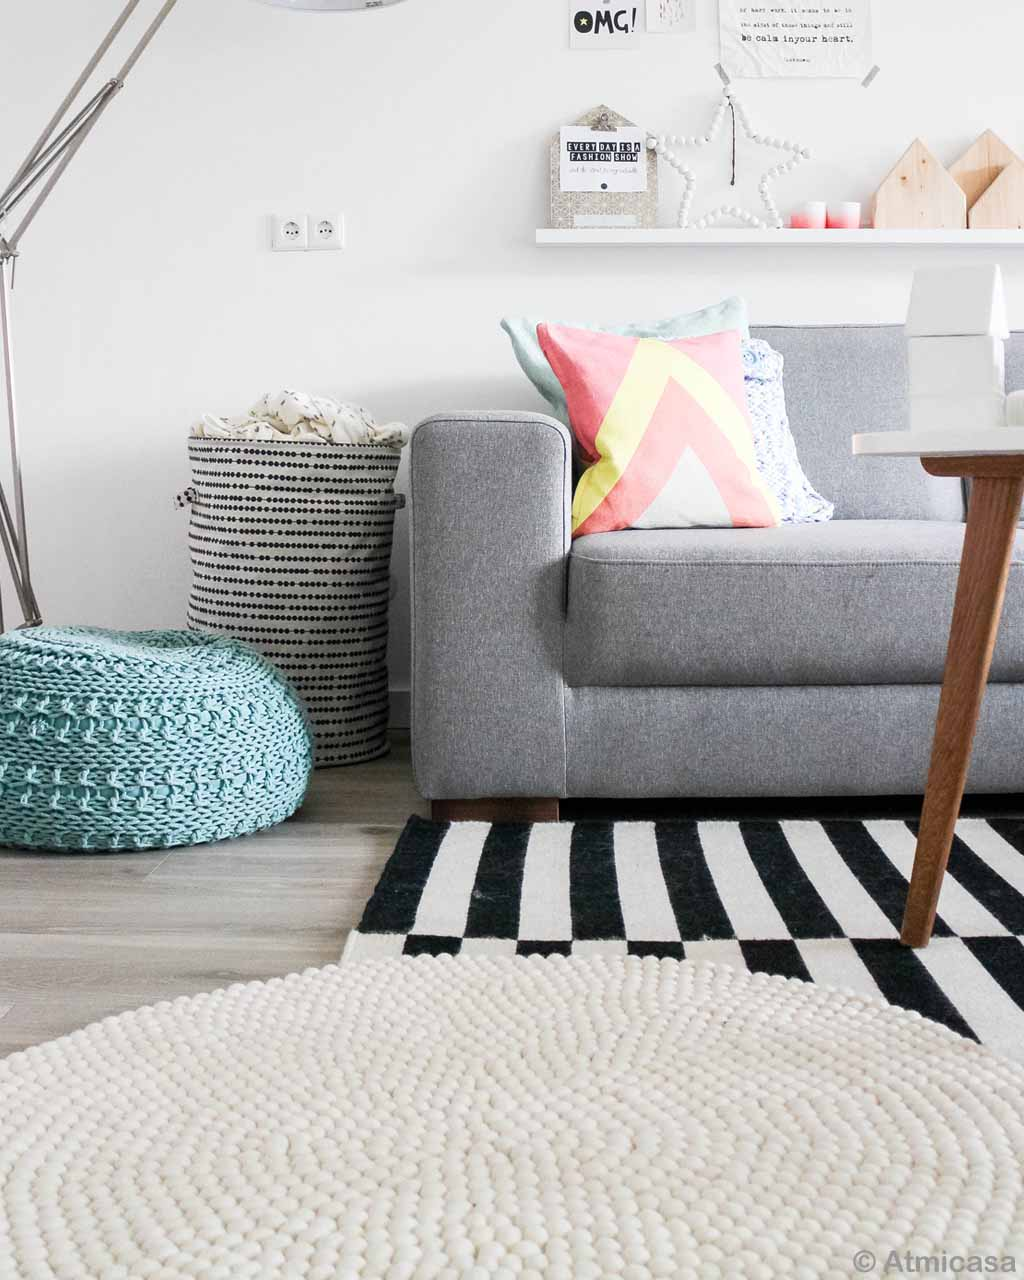 couch sofa and basket made in nepal designer carpets and rugs